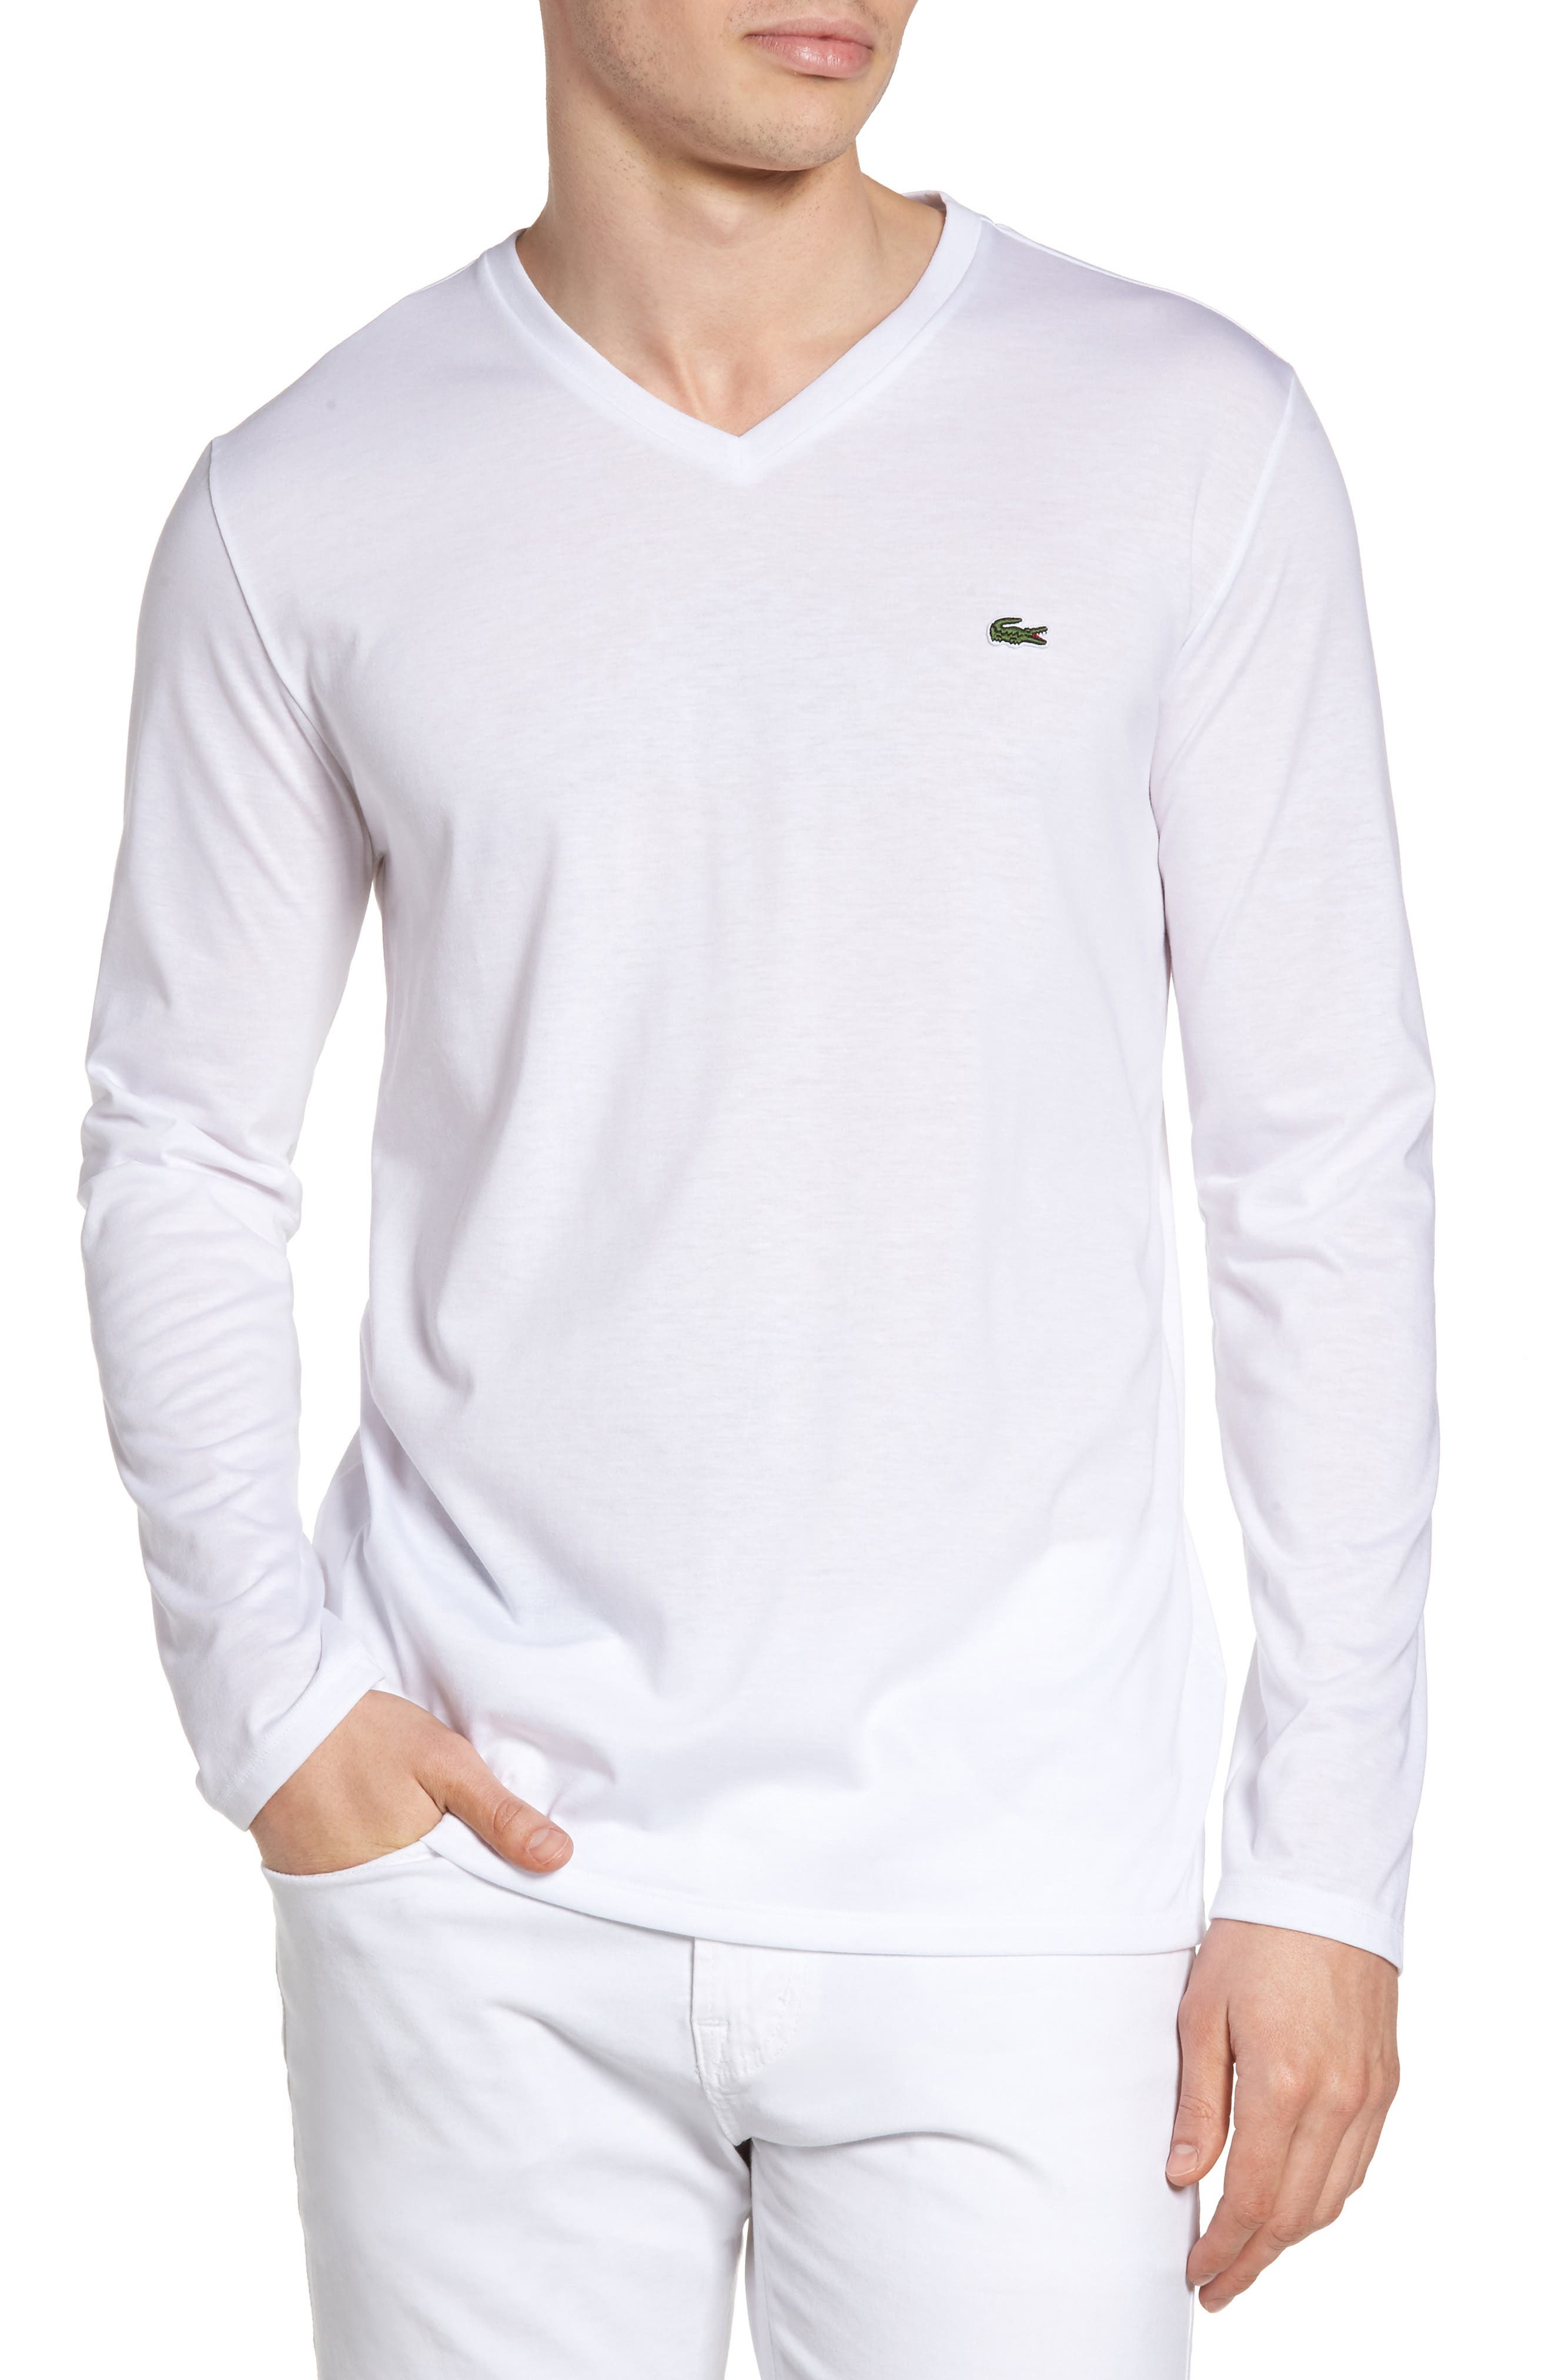 Lacoste Long Sleeve T-Shirt